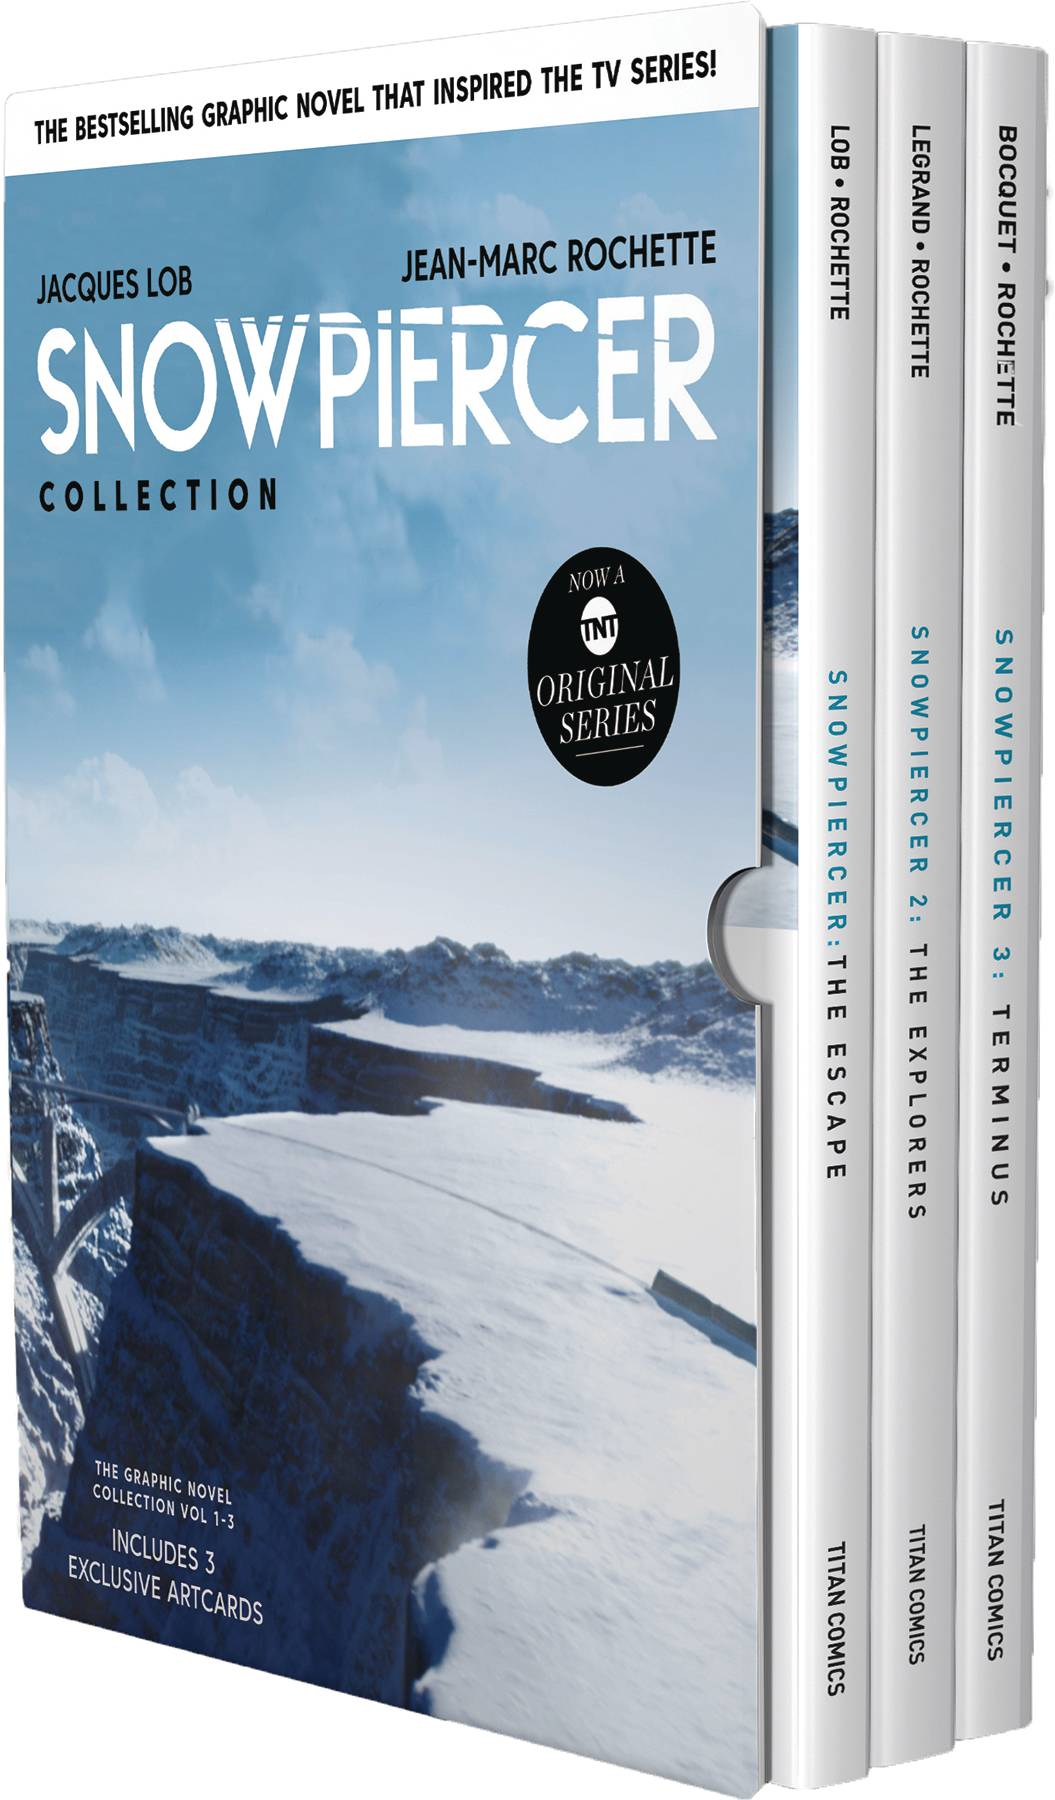 SNOWPIERCER HC BOX SET